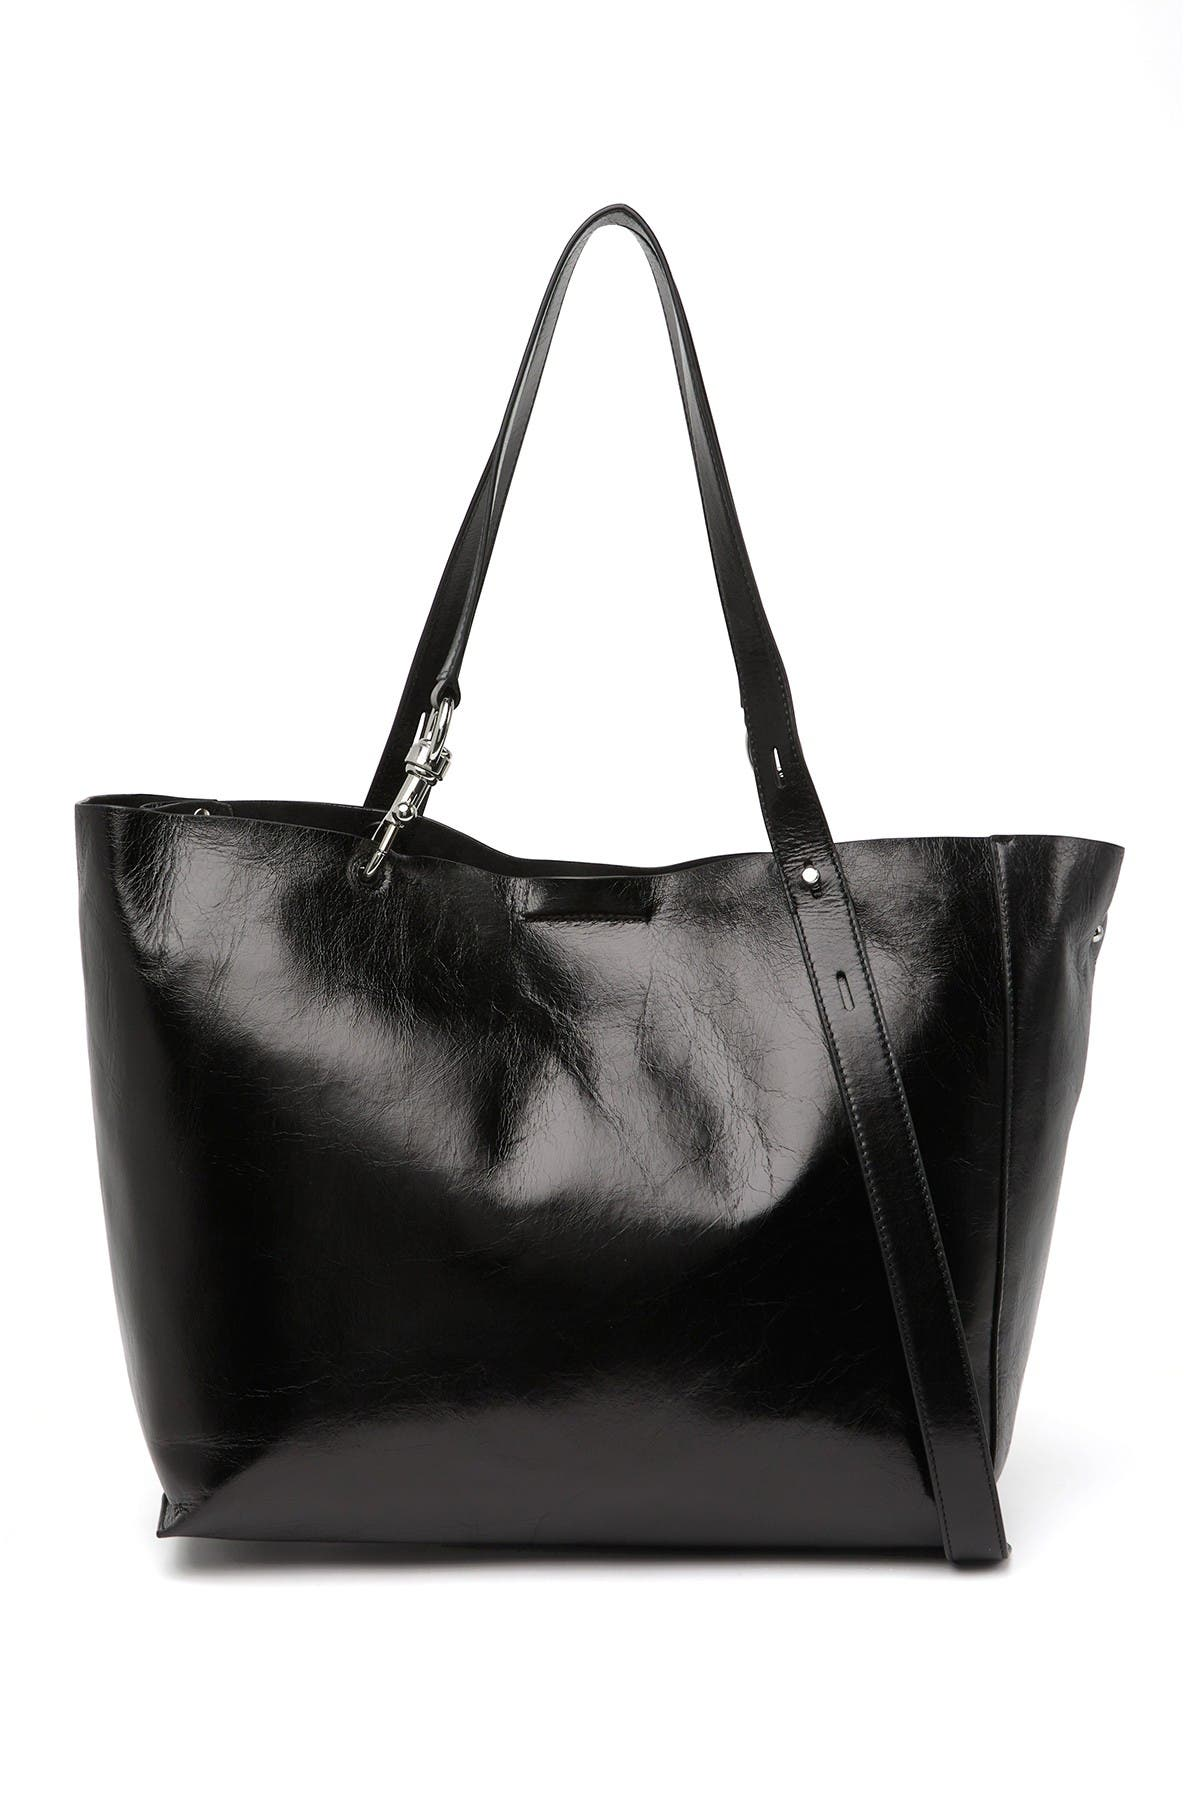 Image of Rebecca Minkoff Stella Large Leather Tote